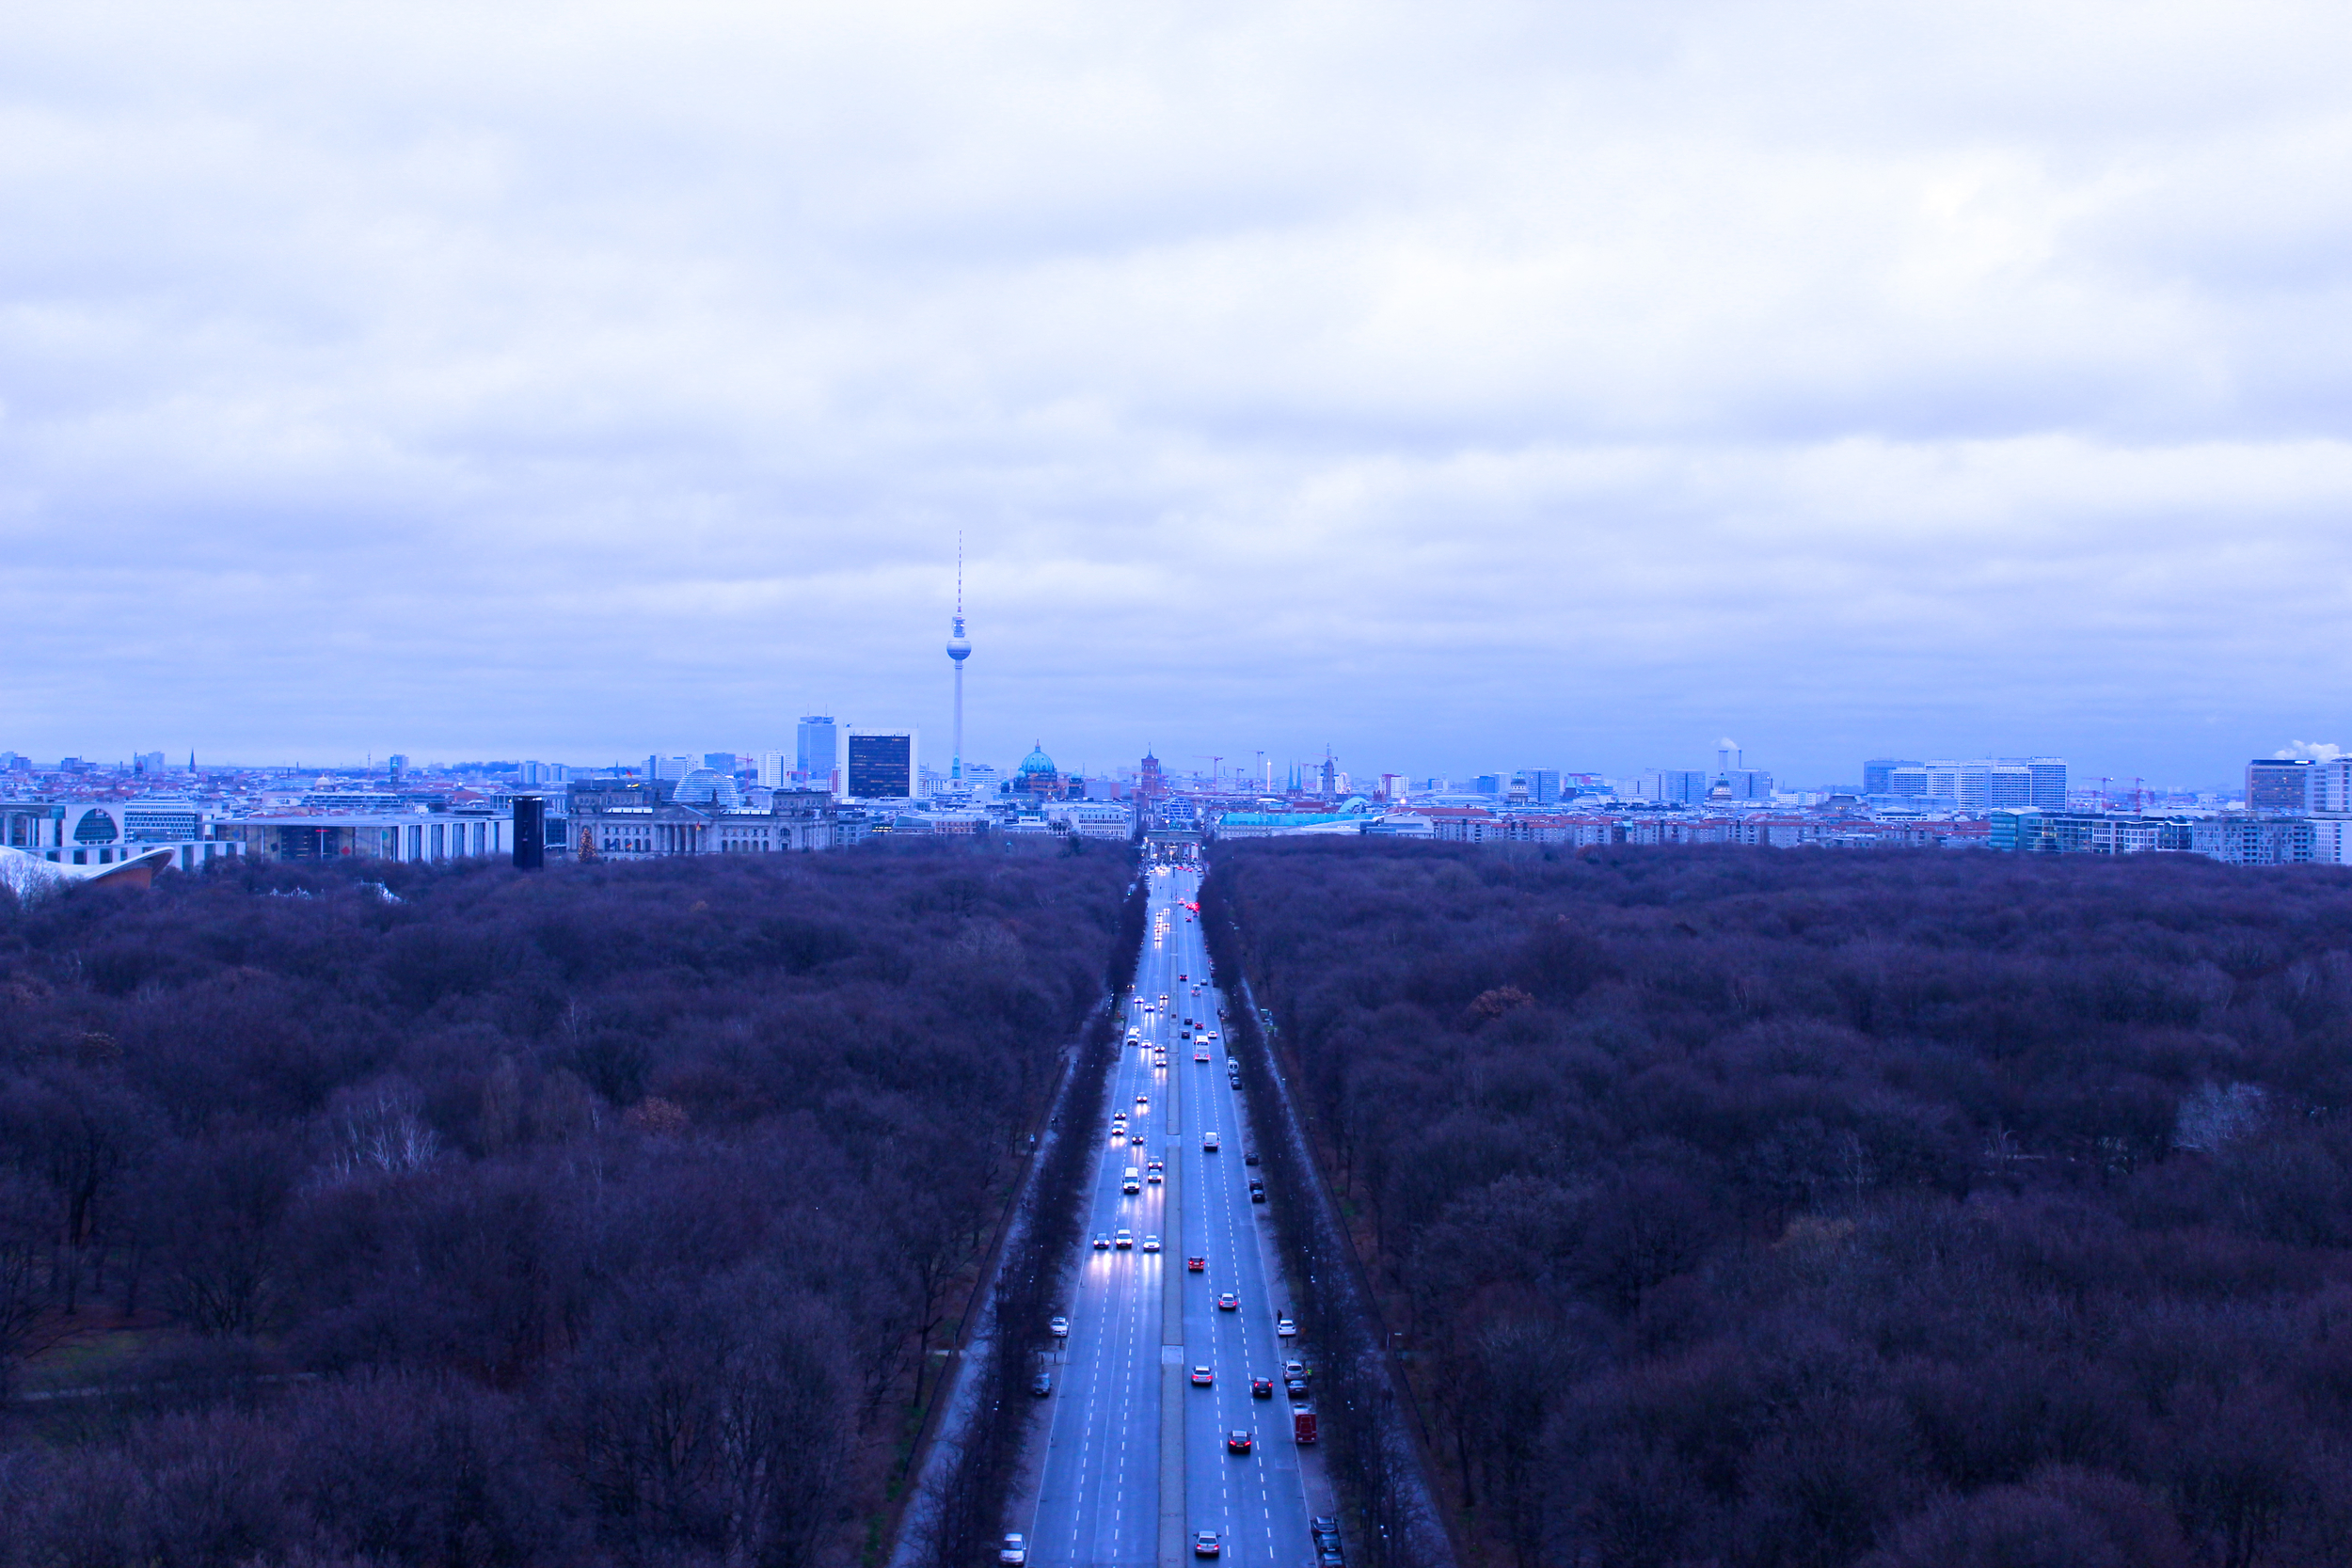 View from atop the Victory Column